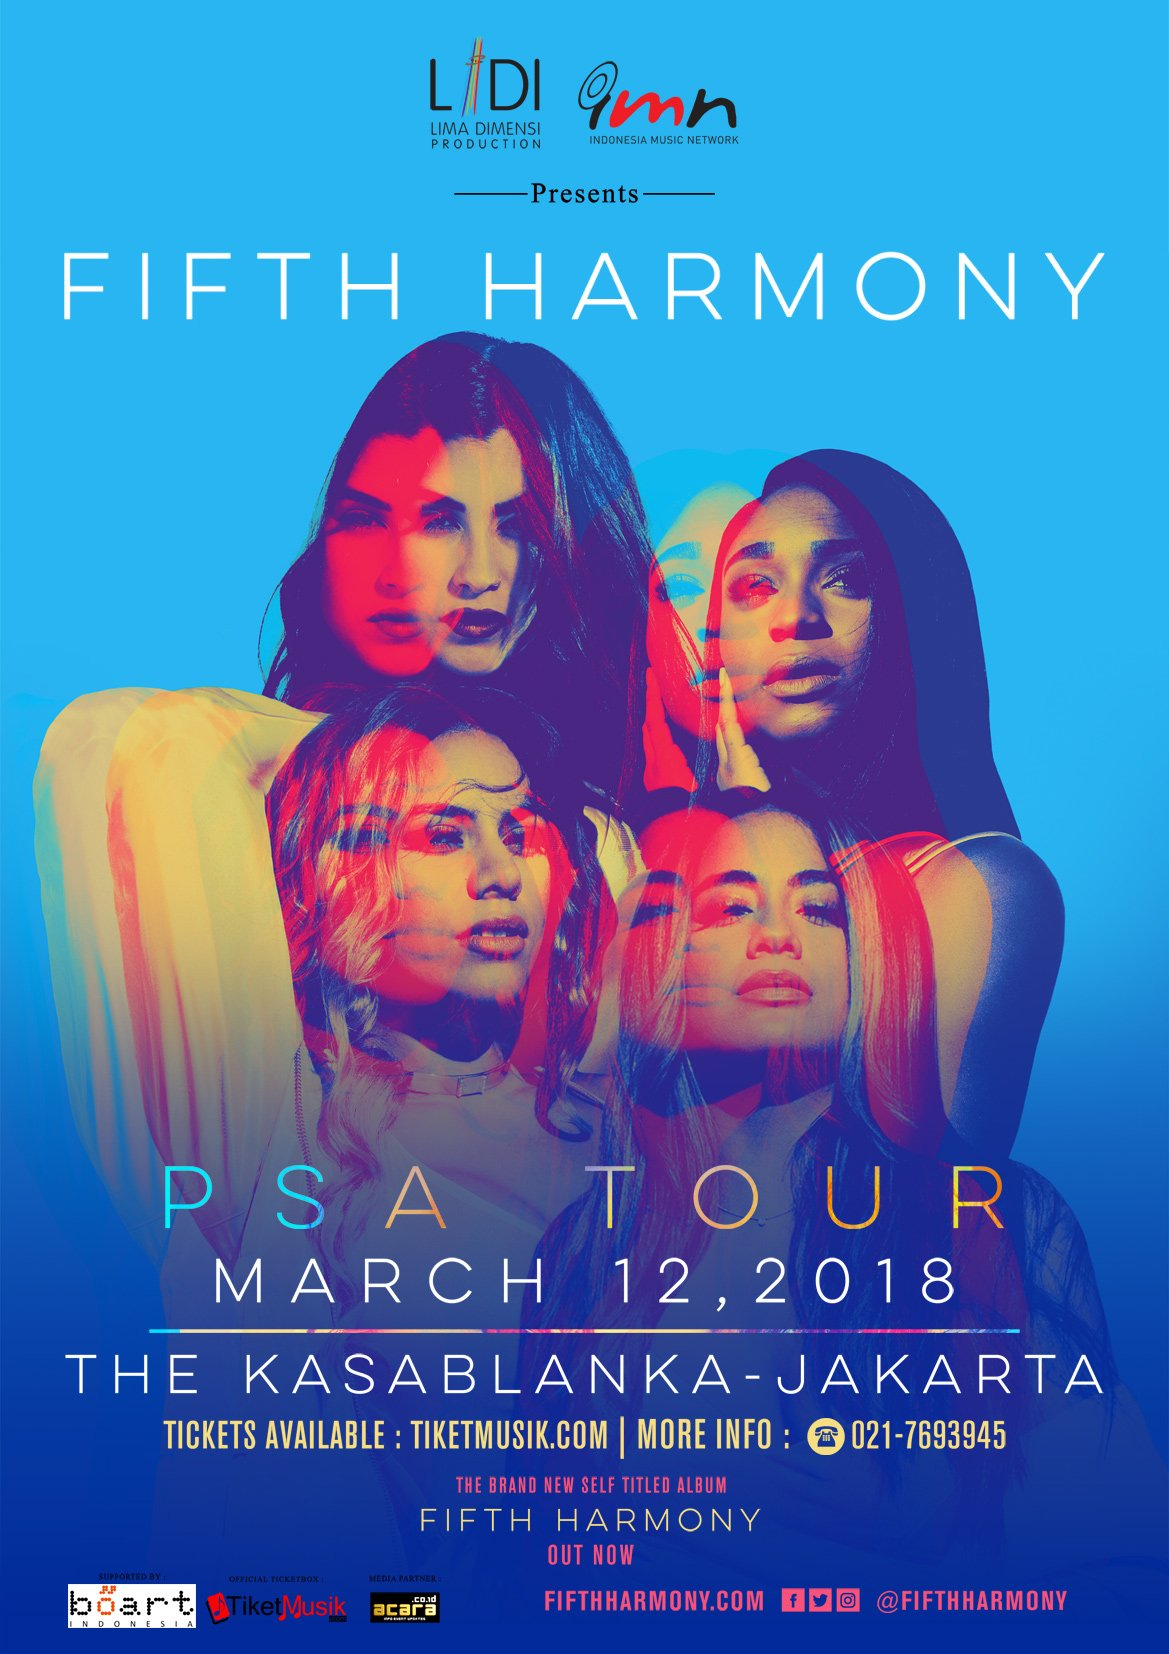 You ready JAKARTA?! Your girls are coming to see YOU March 12 ������  #5HPSATour https://t.co/cL1f1VrSwK https://t.co/Vdwg0Tai1g